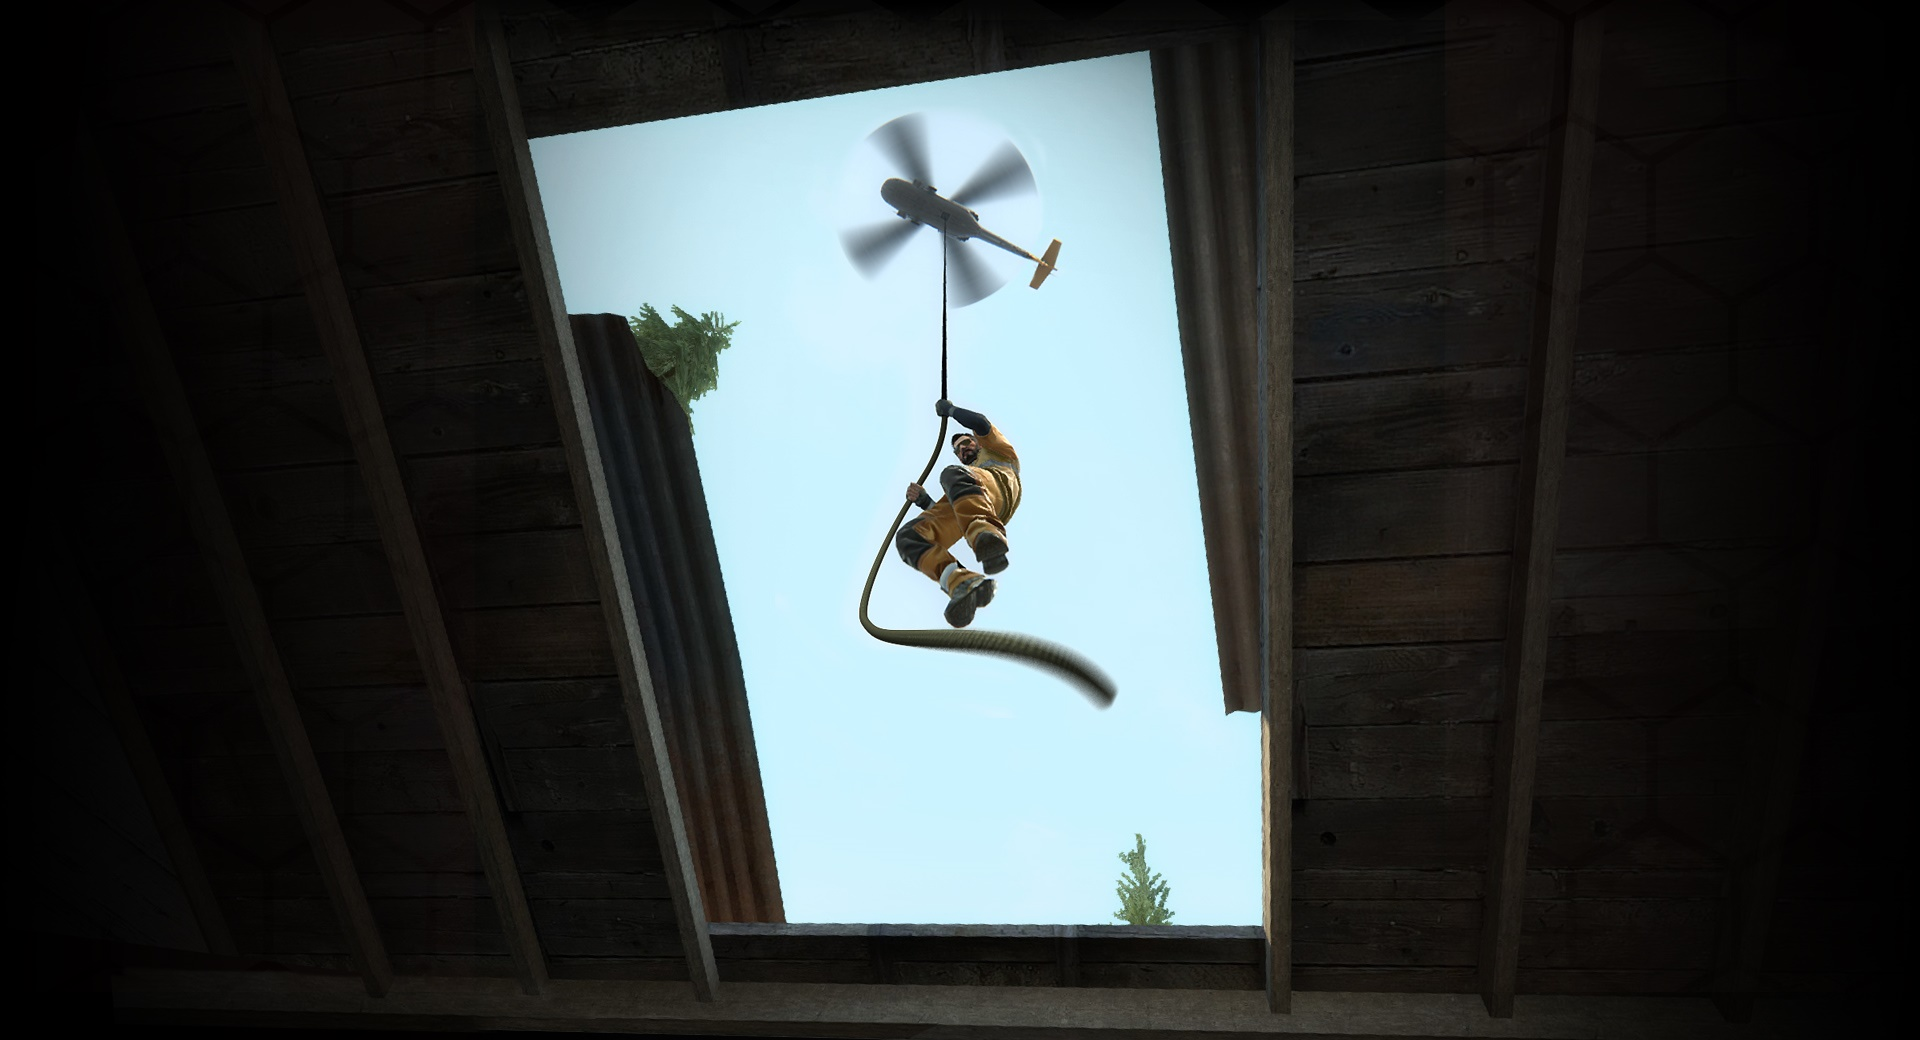 Looking up through the sunroof of a building as a man in full combat gear rappels down from a helicopter